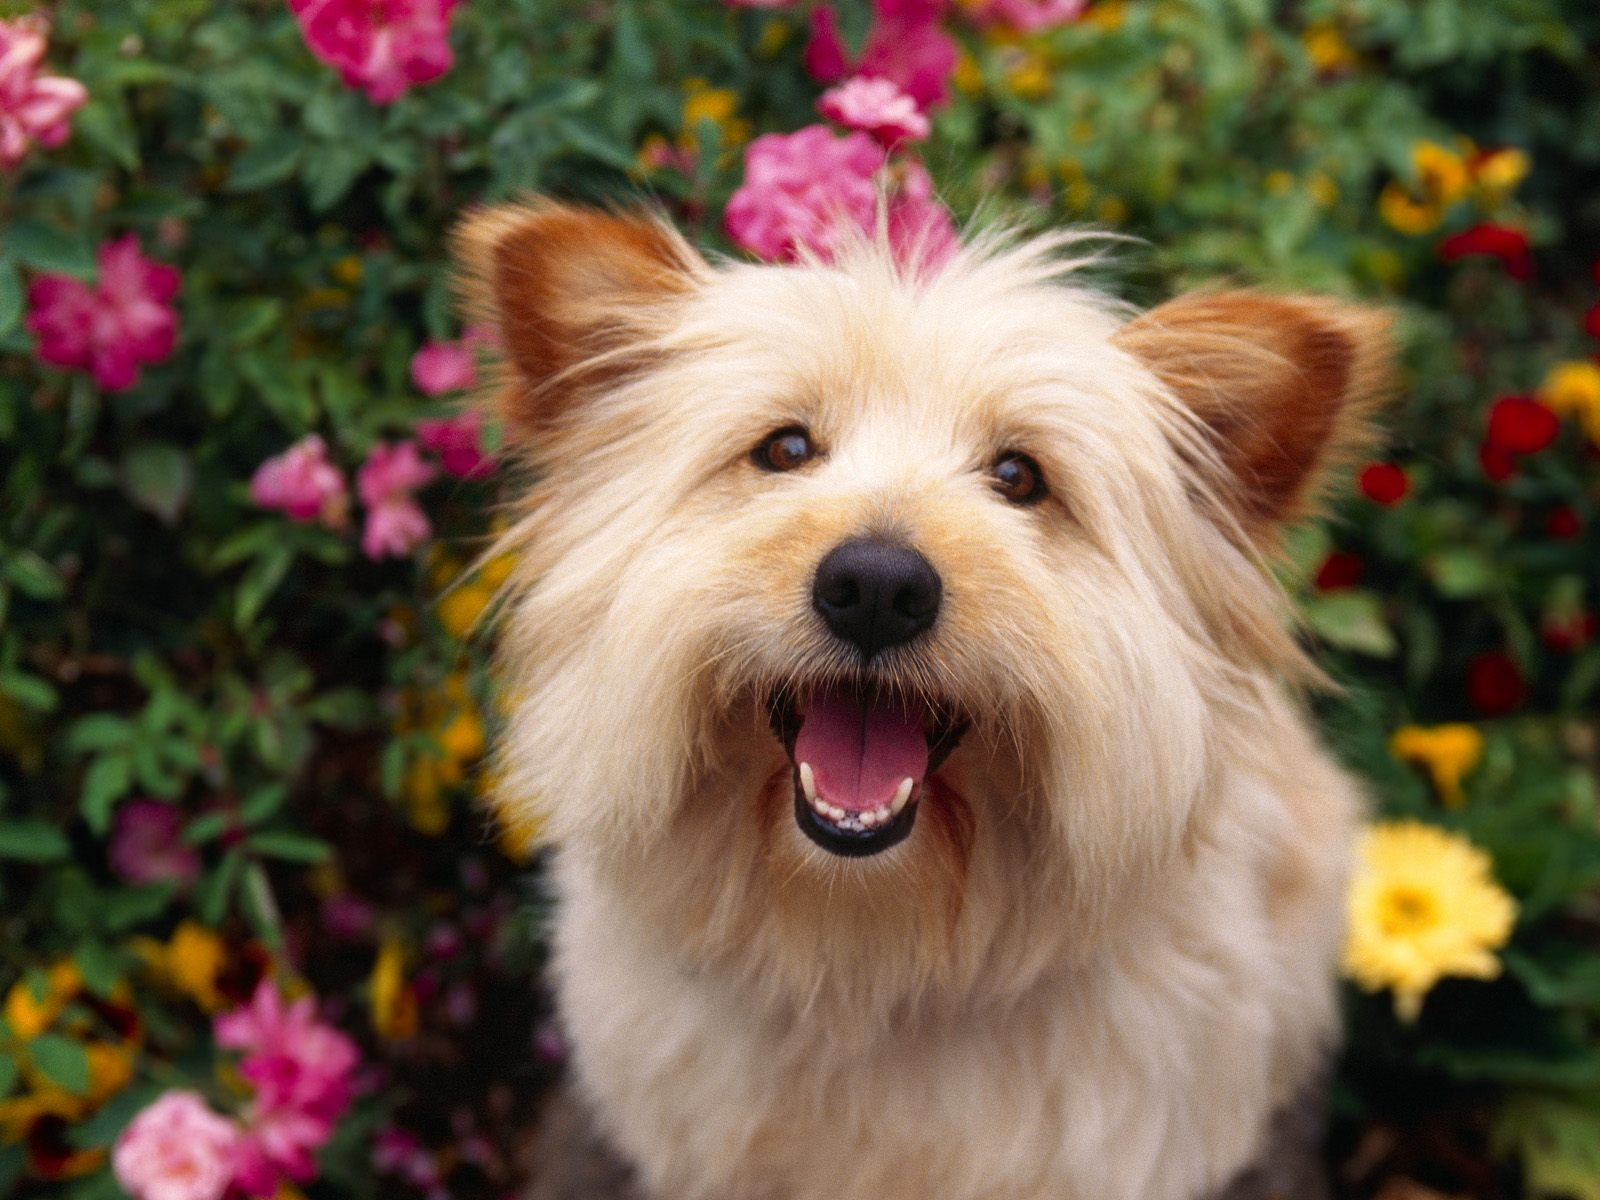 Wallpaperfreeks hd cute dog wallpapers 1600x1200 for Pictures of cute dogs